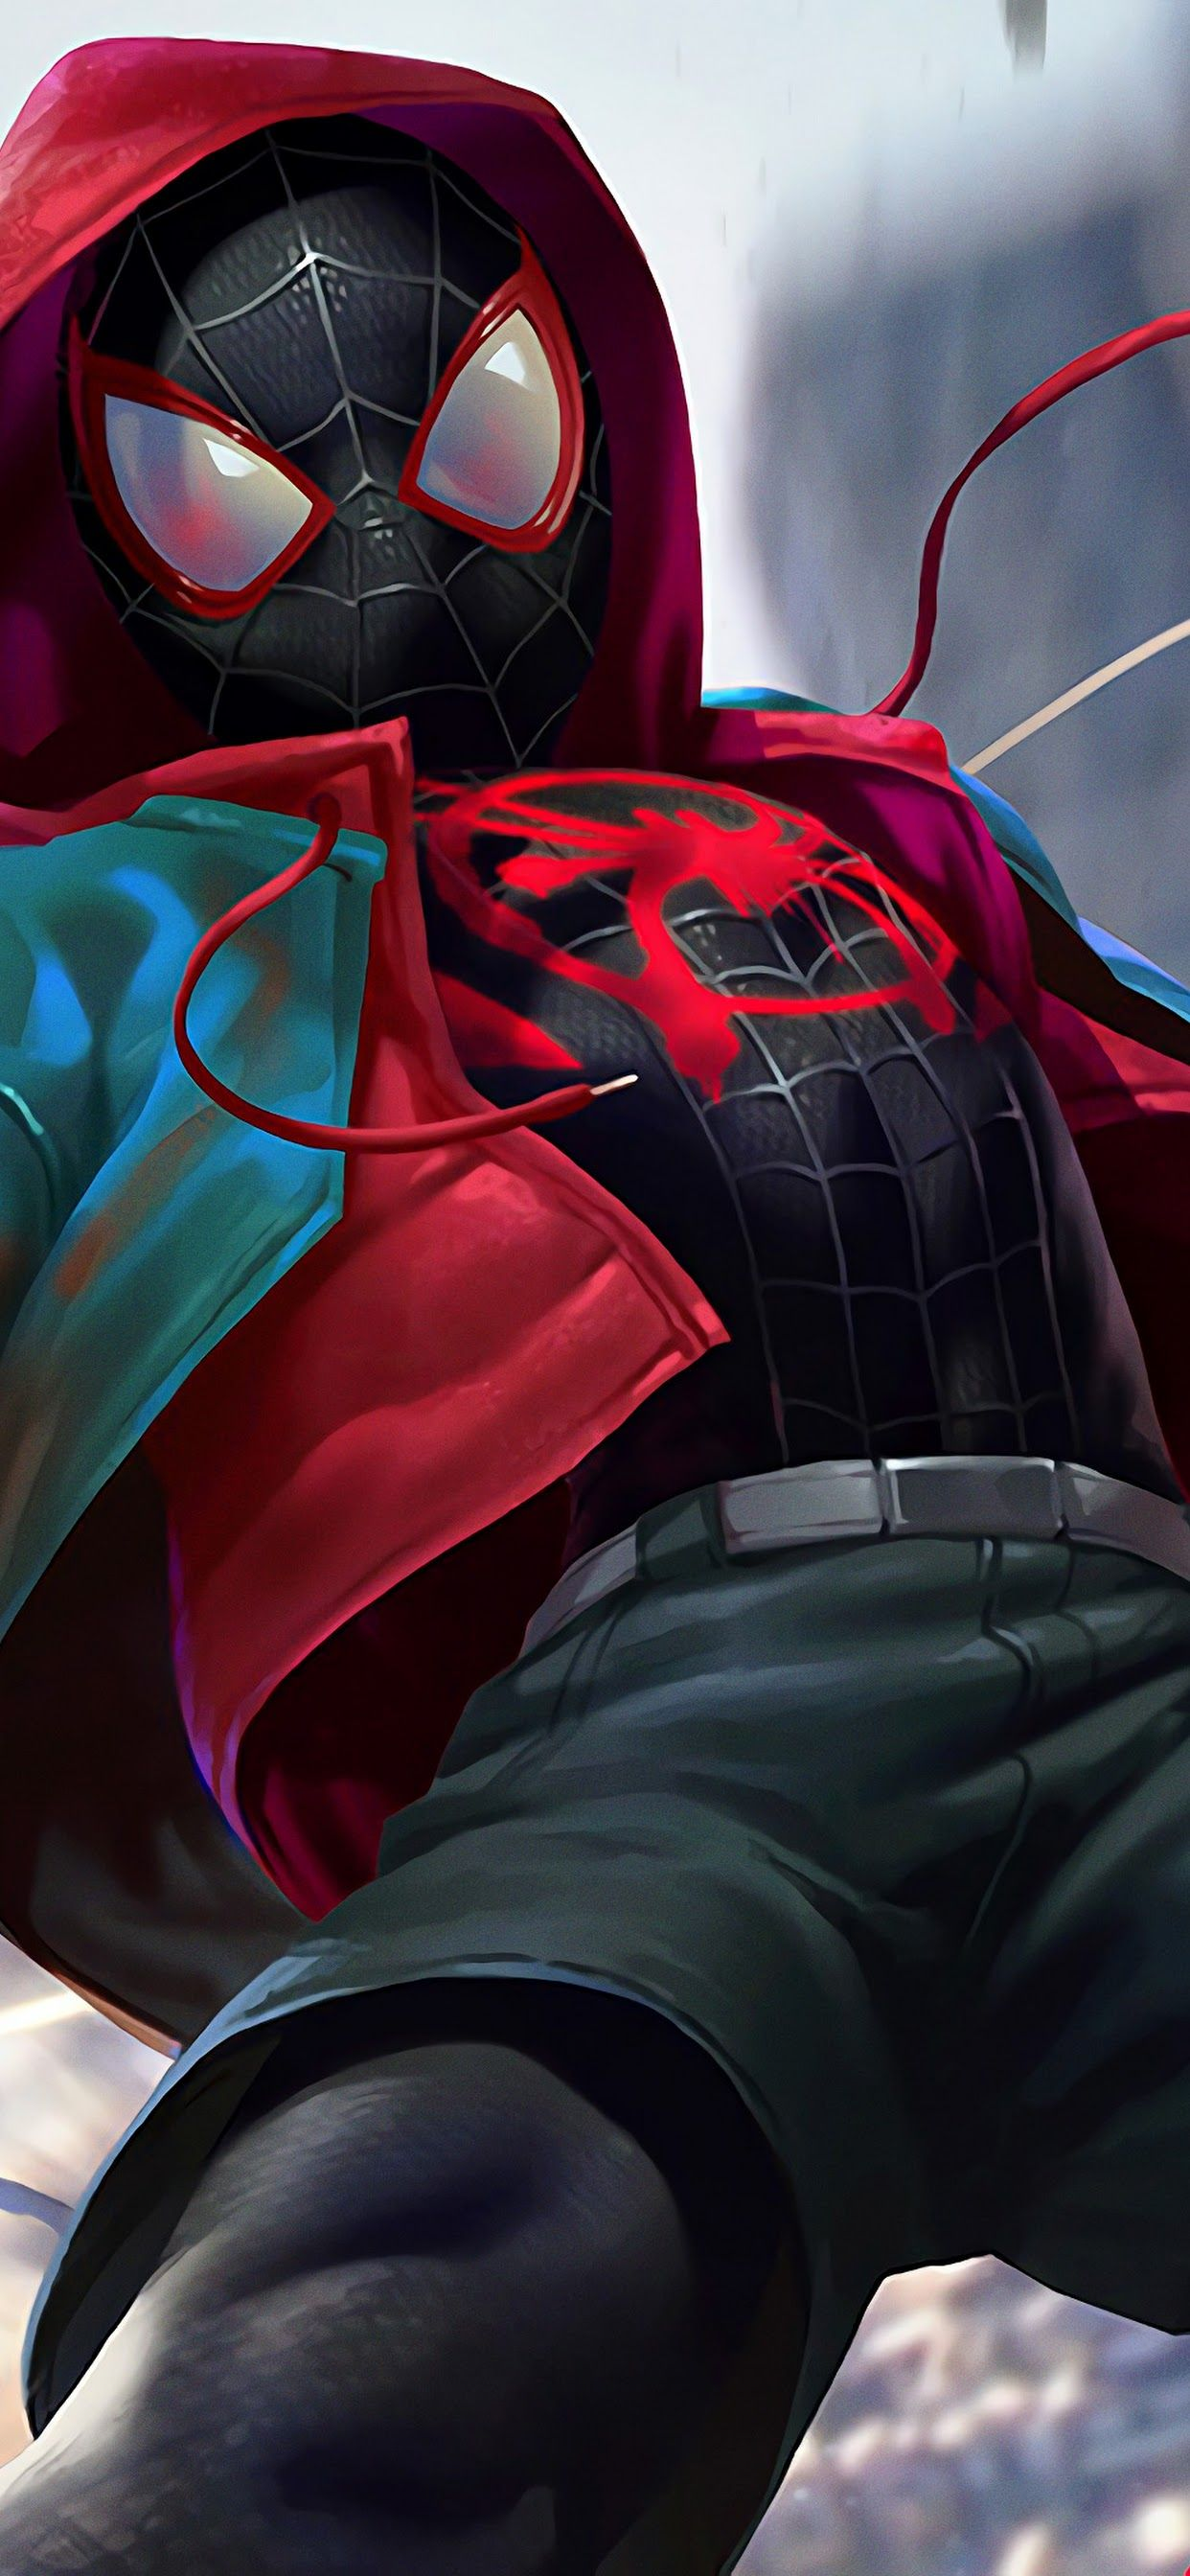 Spider Man Into The Spider Verse Laptop Wallpaper Google Search Marvel Comics Wallpaper Spiderman Marvel Spiderman